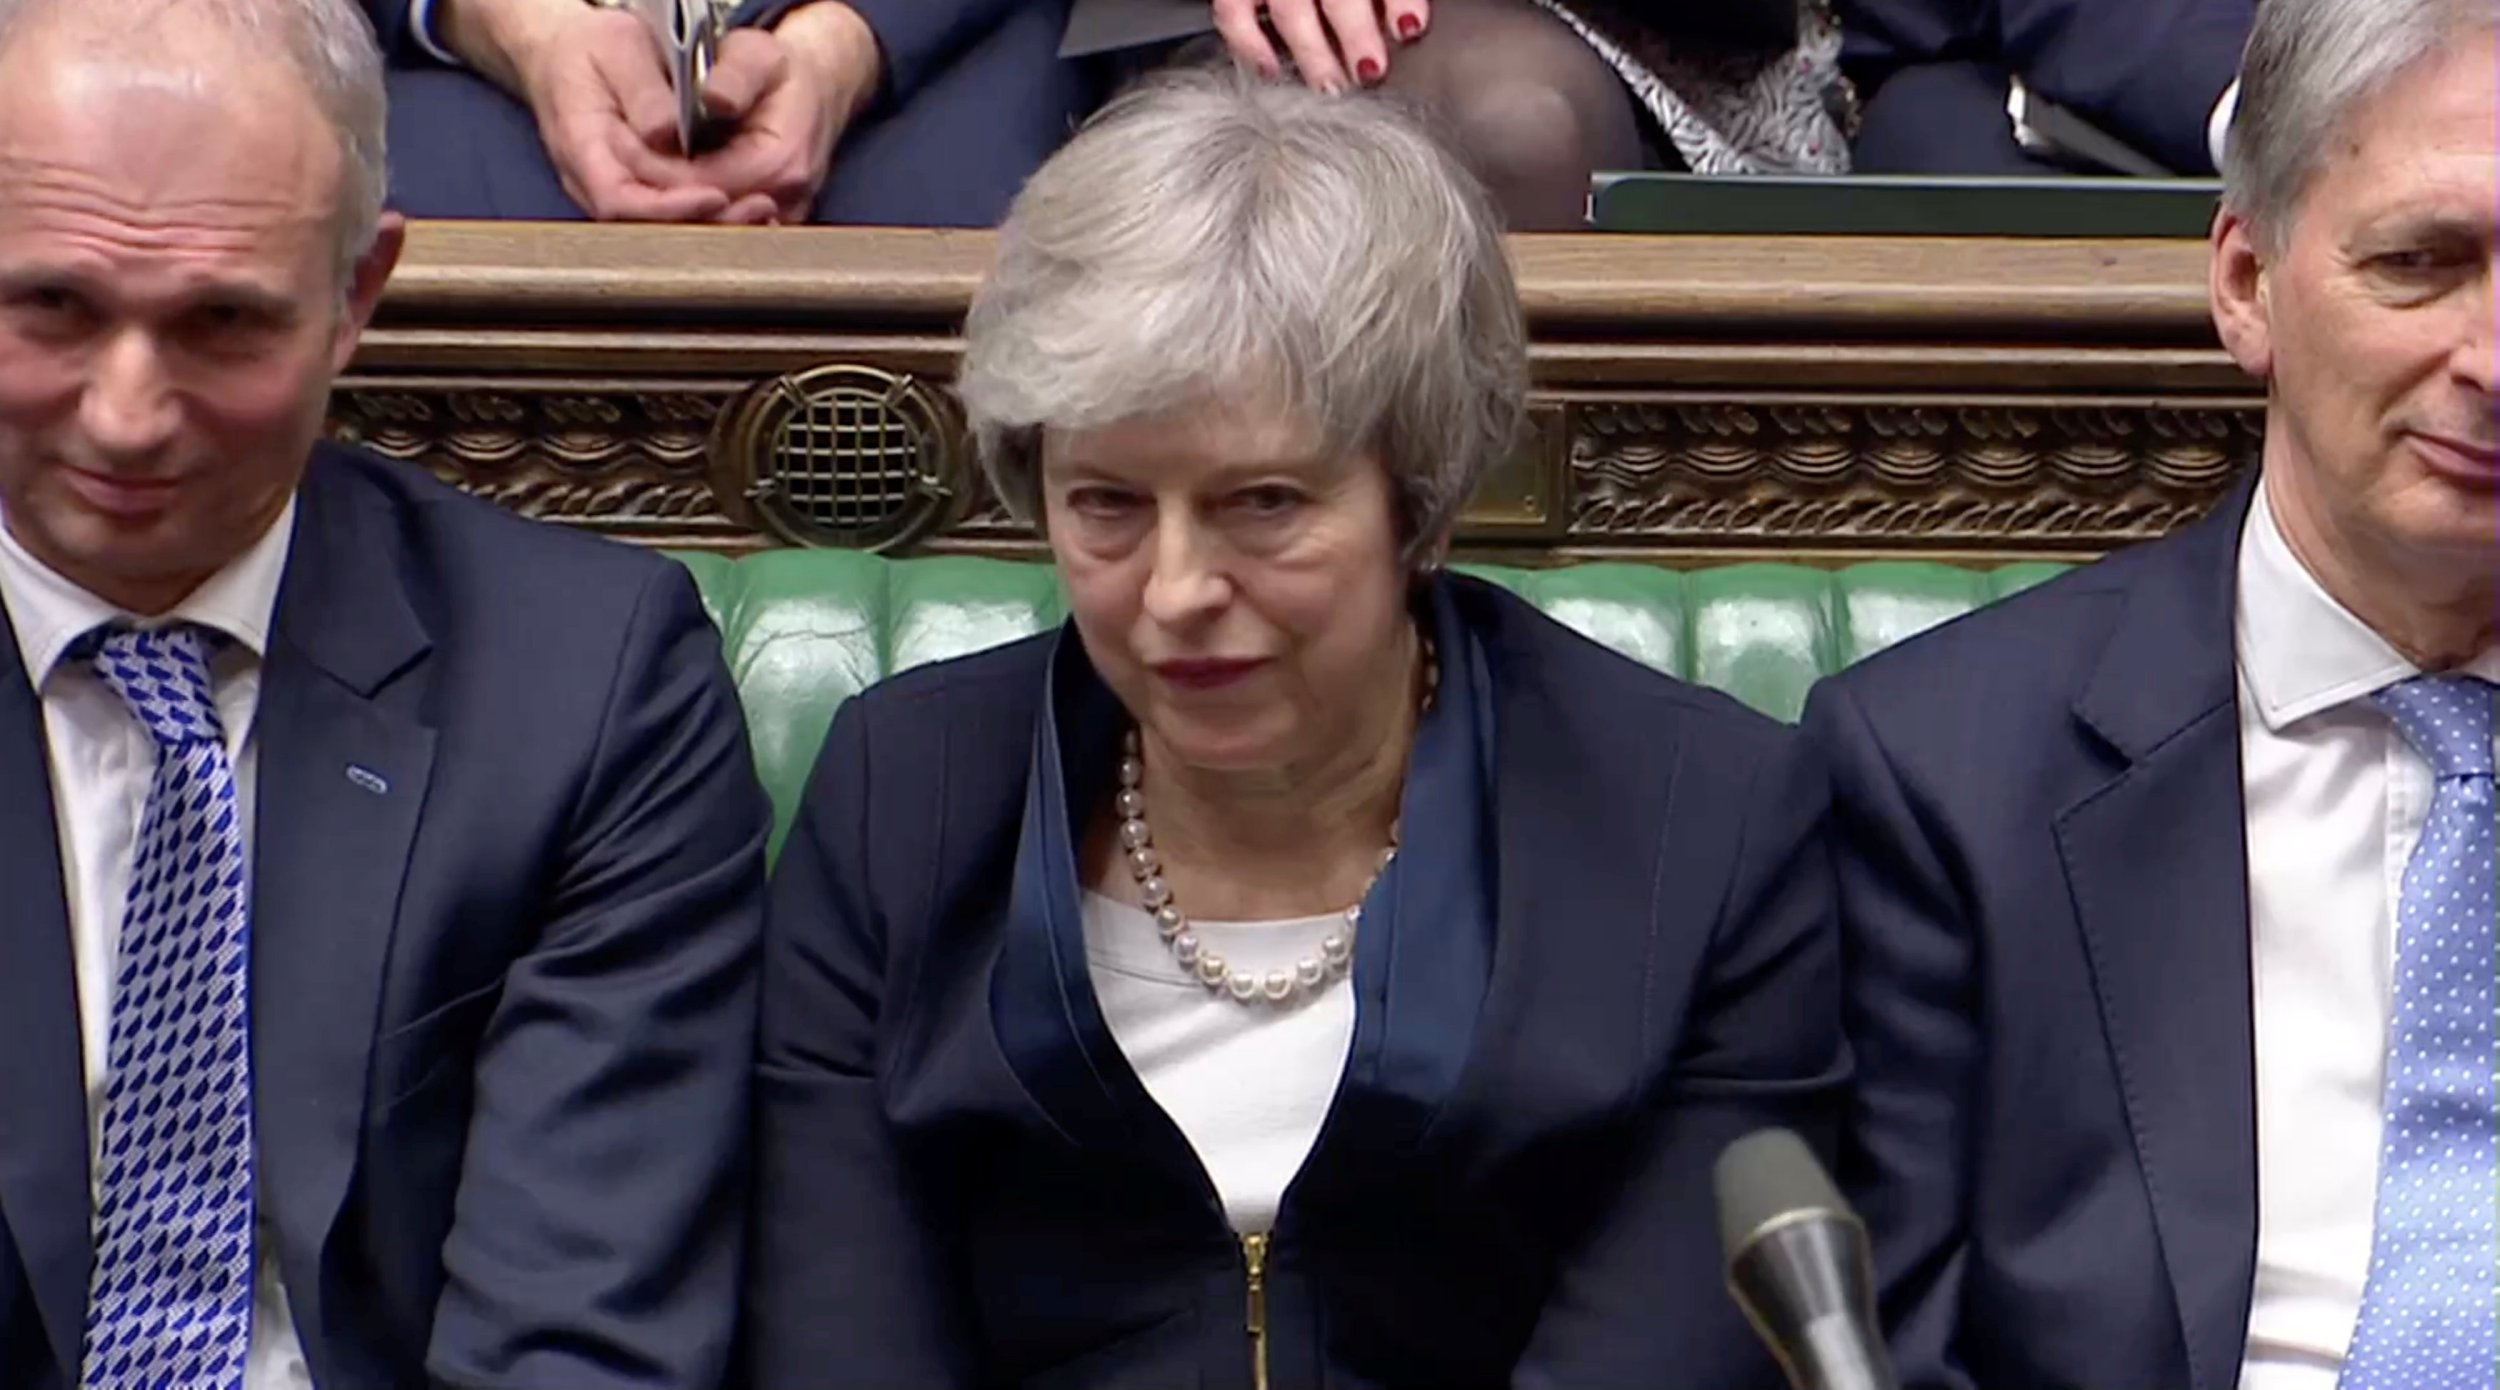 Prime Minister Theresa May sits down in Parliament after the vote on May's Brexit deal, in London, Britain, January 15, 2019 in this screengrab taken from video. Reuters TV via REUTERS